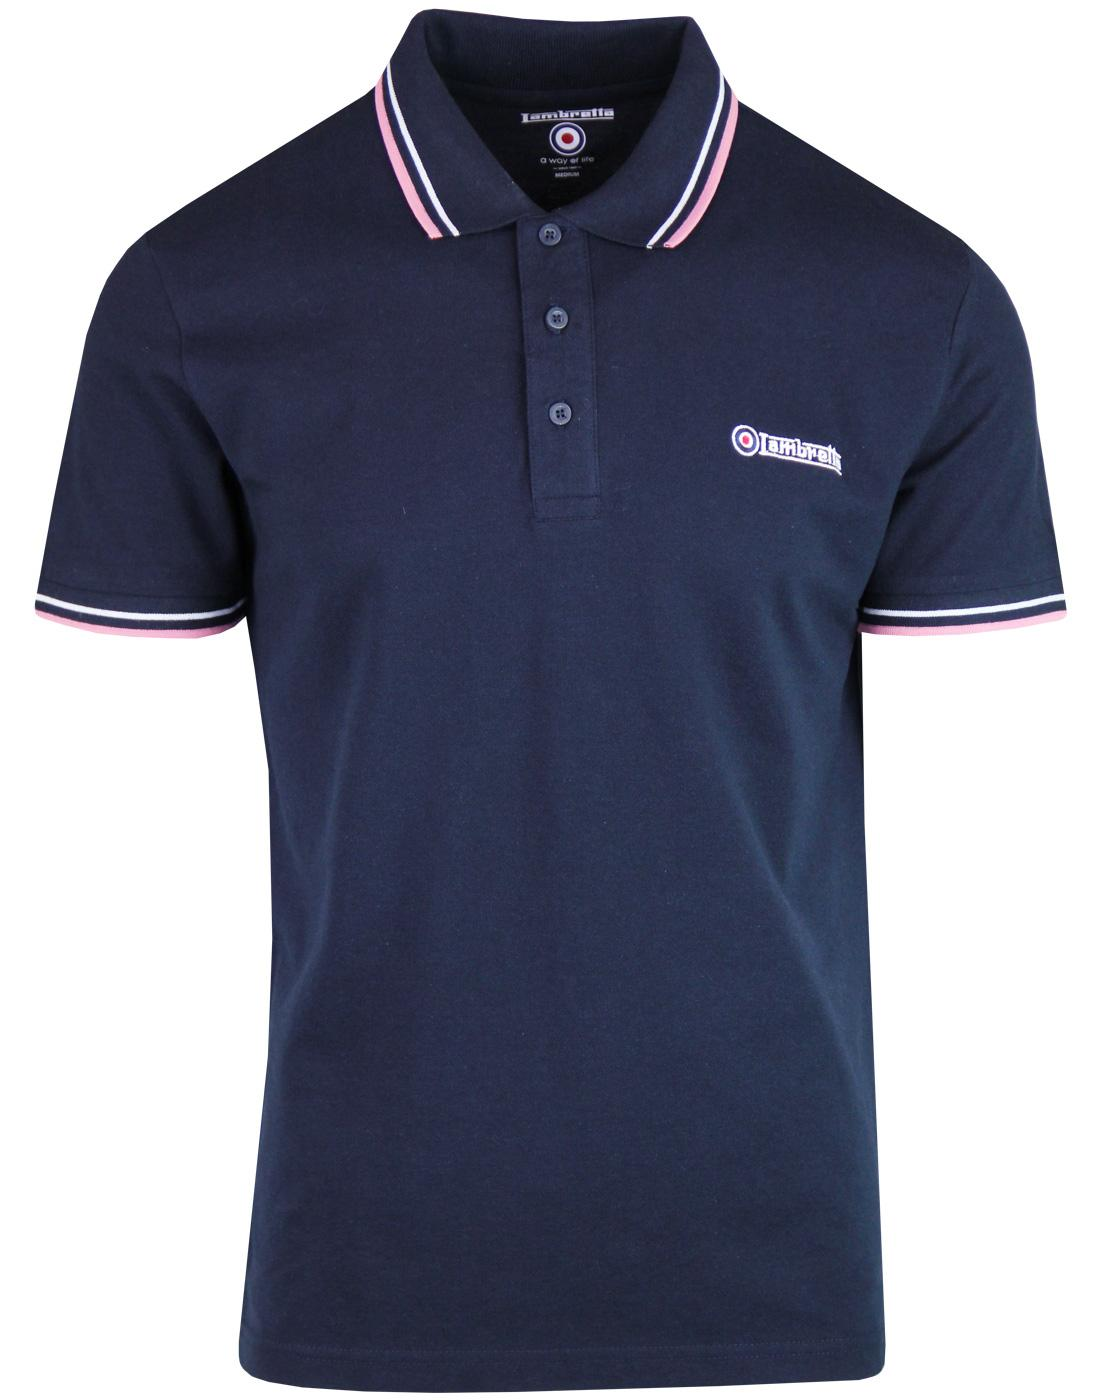 LAMBRETTA Retro Twin Tipped Pique Polo Shirt NAVY